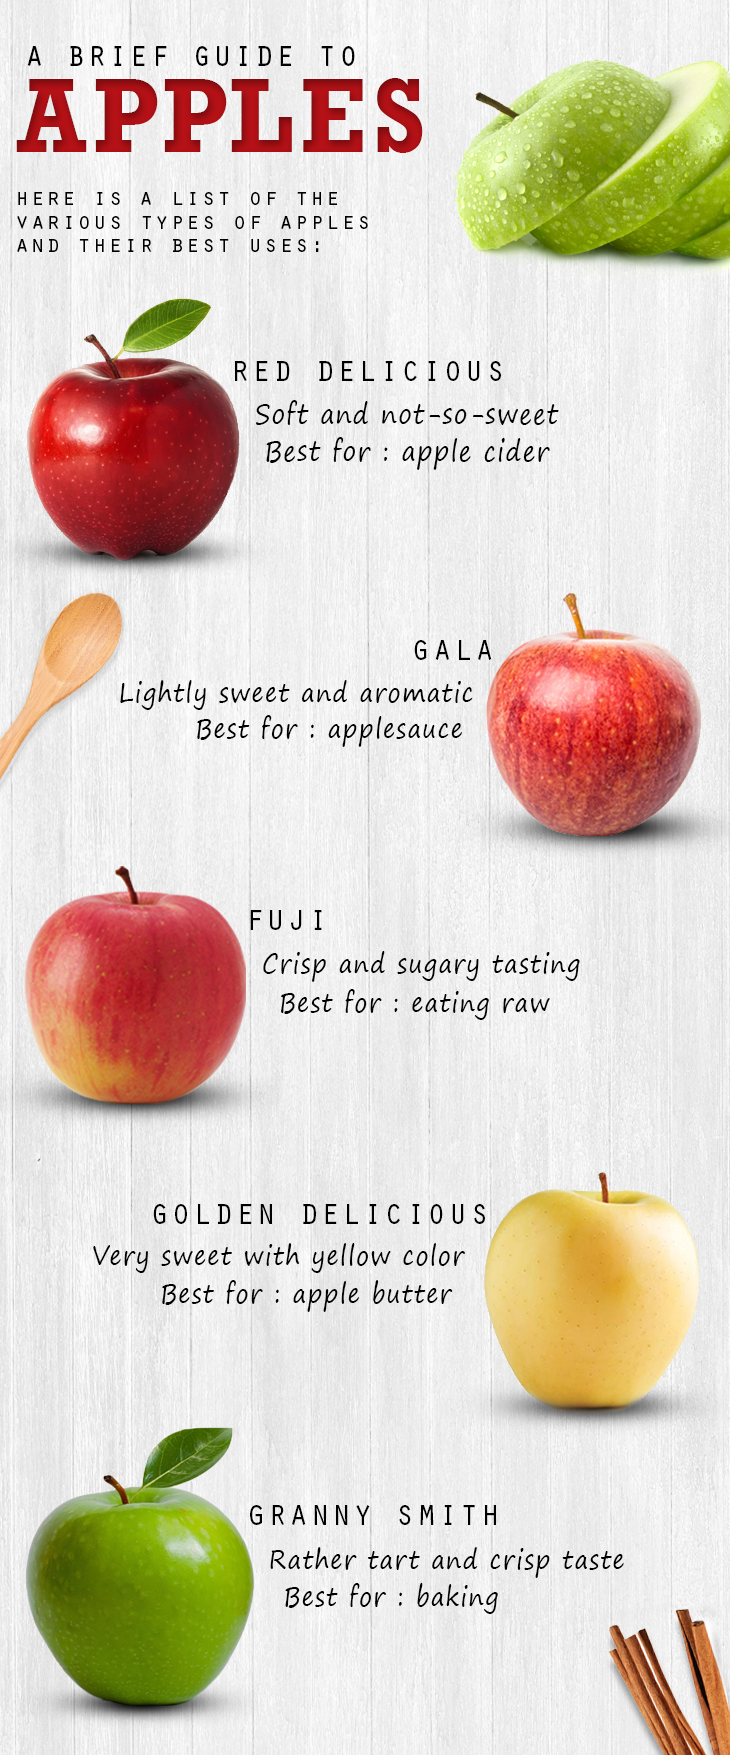 A-Guide-To-Apples.png